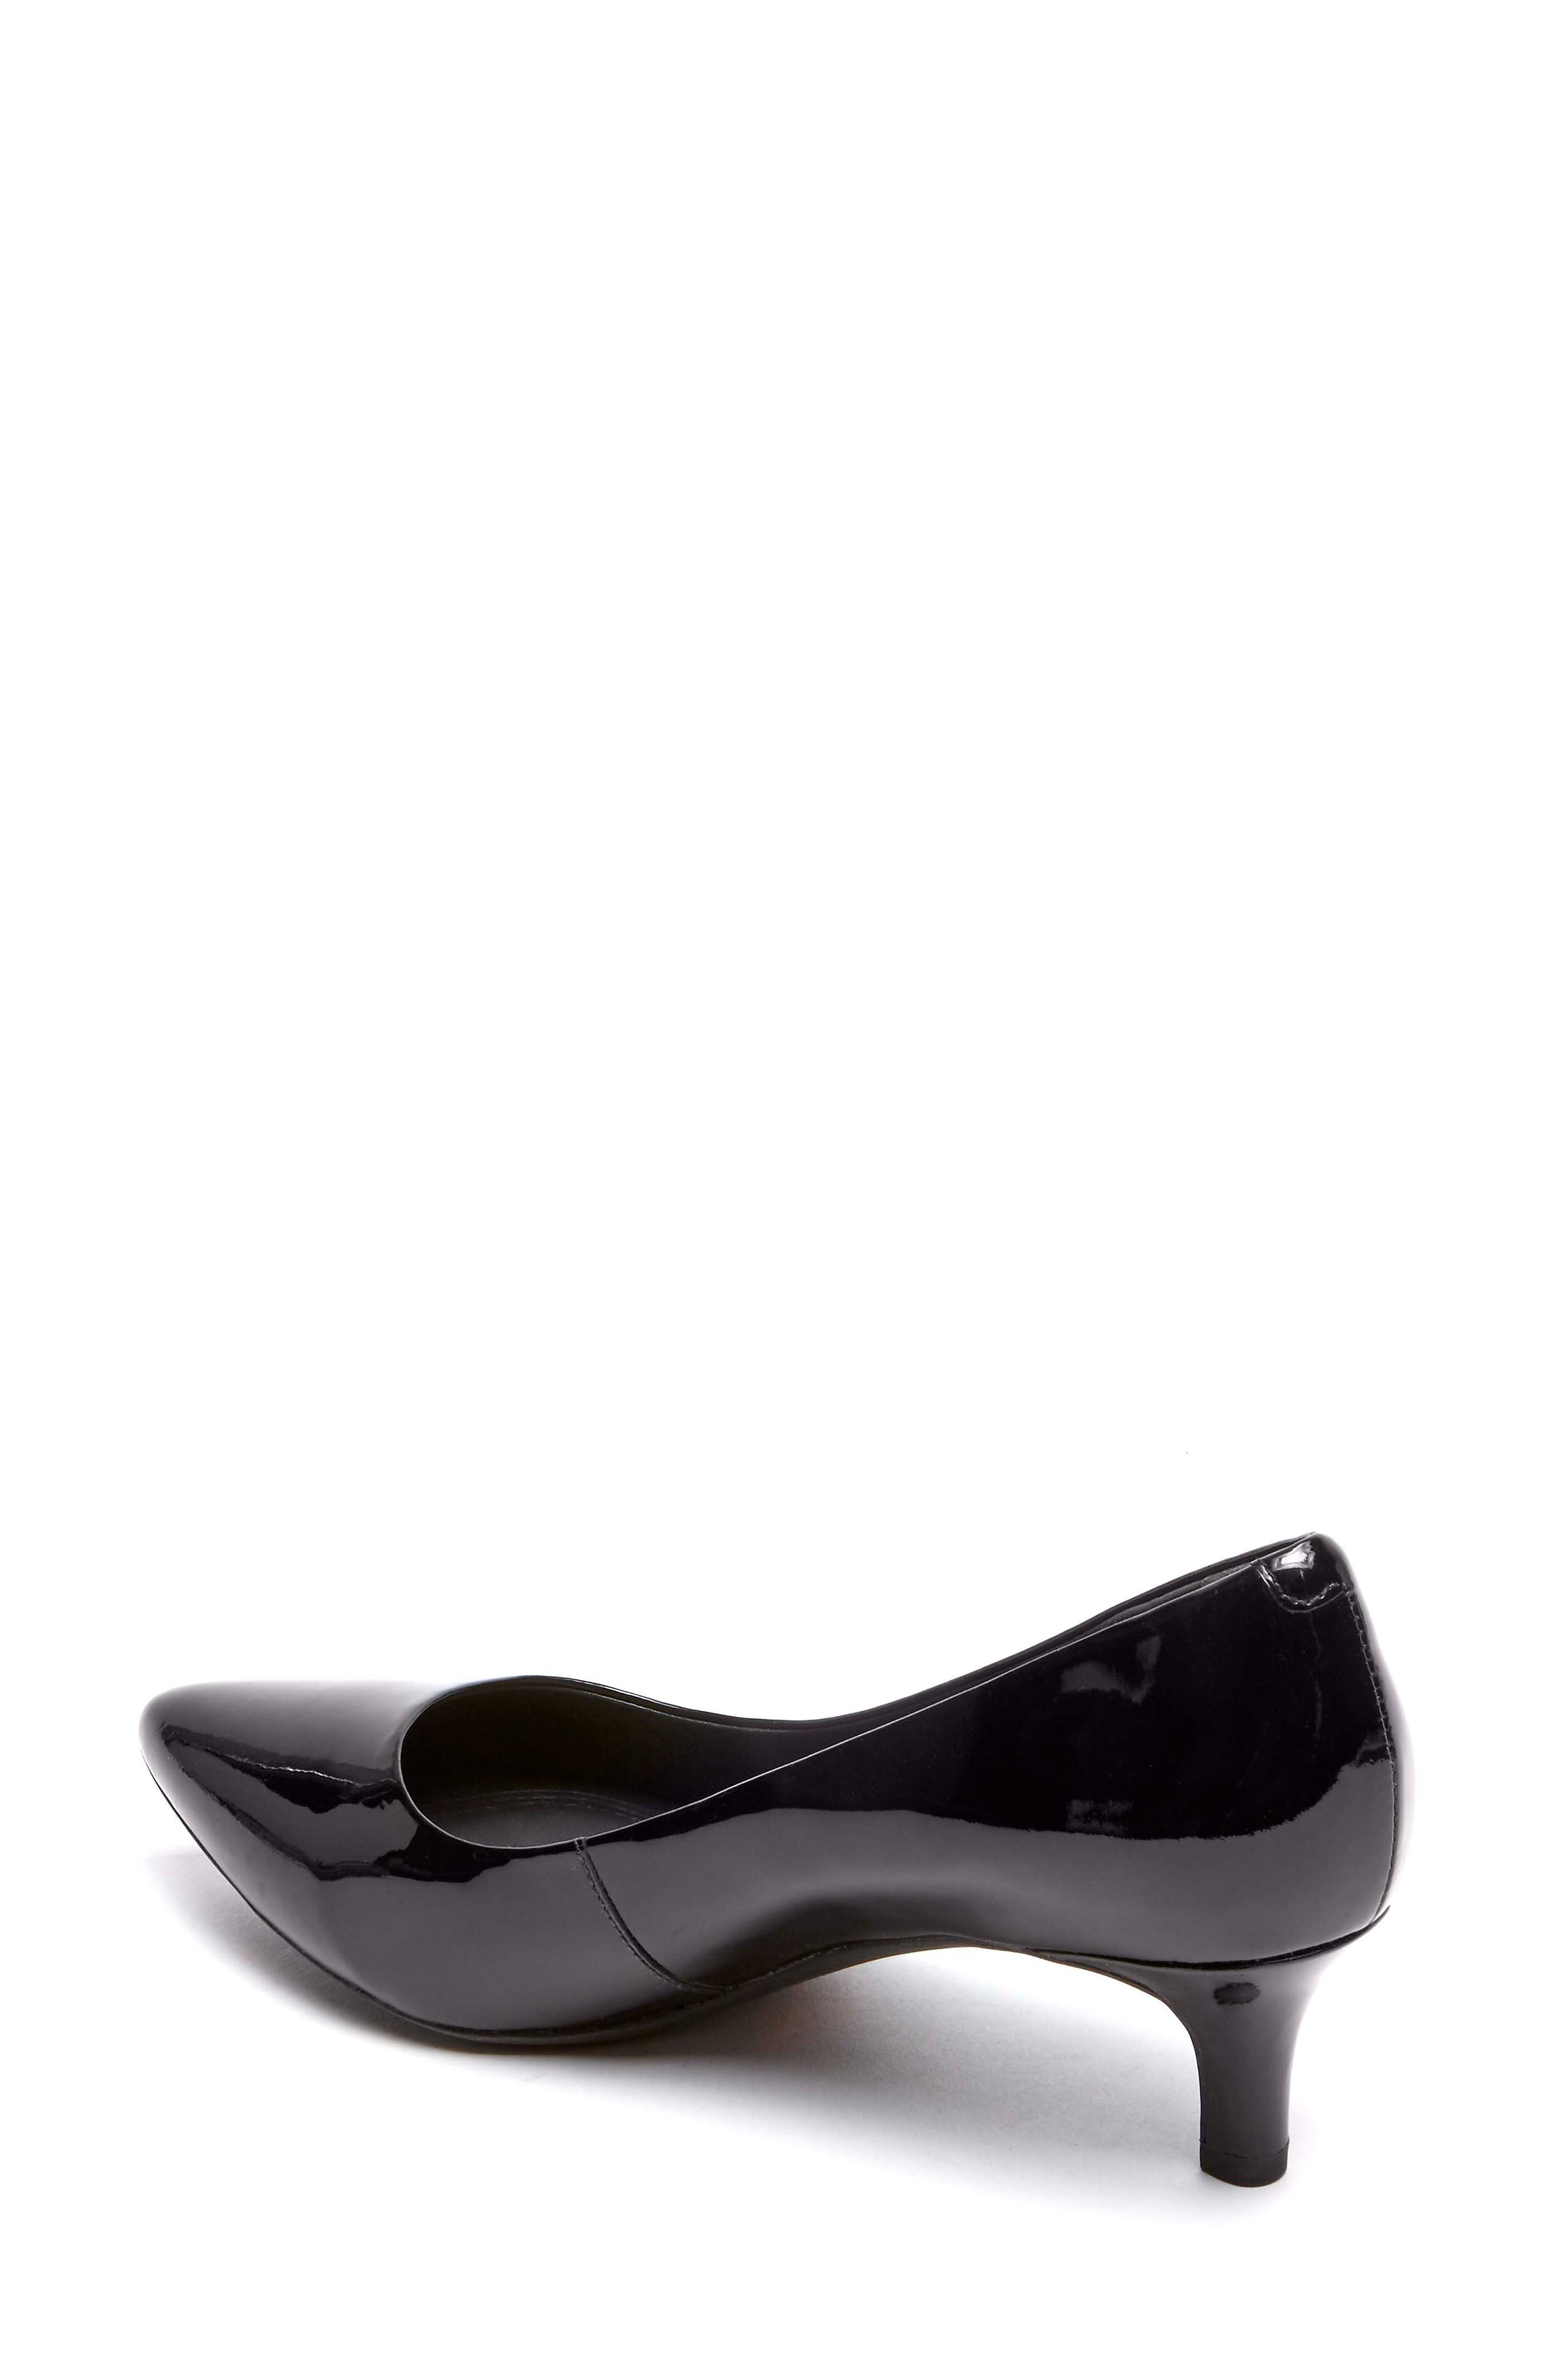 Kalila Luxe Pump,                             Alternate thumbnail 2, color,                             BLACK PATENT LEATHER